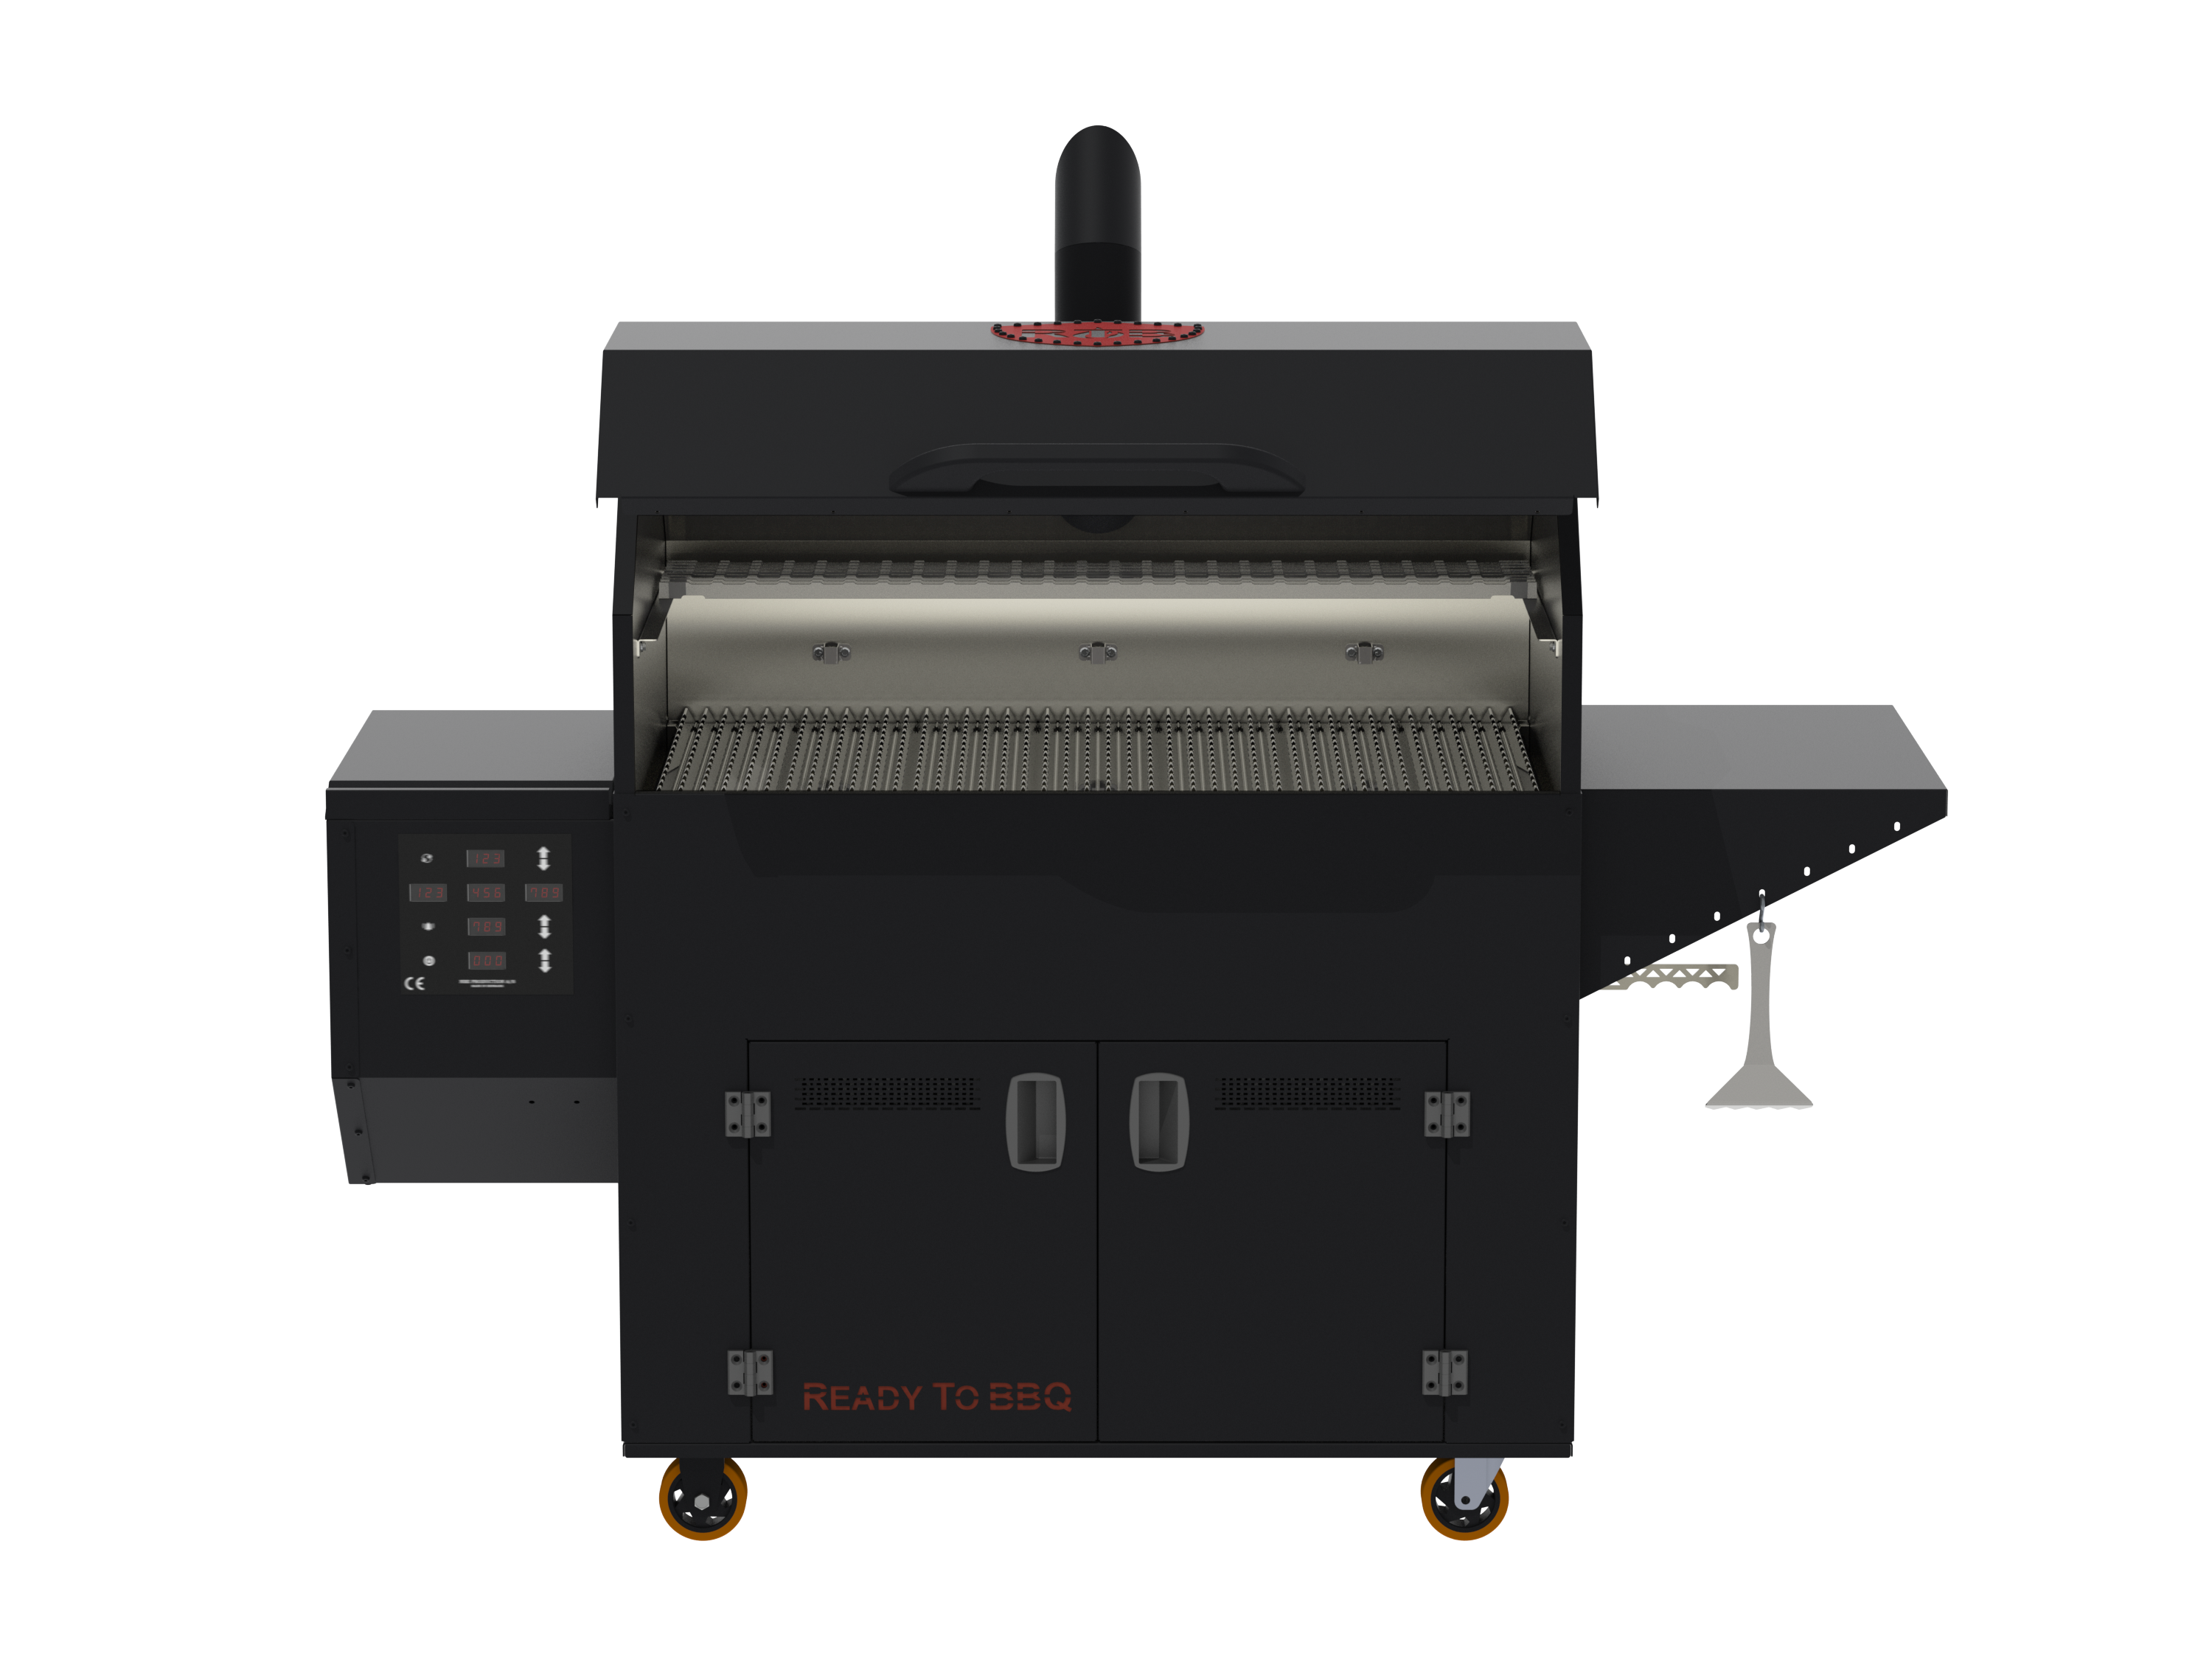 Rtb Ready To Burn Wood Pellet Boilers Powered By Nature Traeger Grill 100 Wiring Diagram